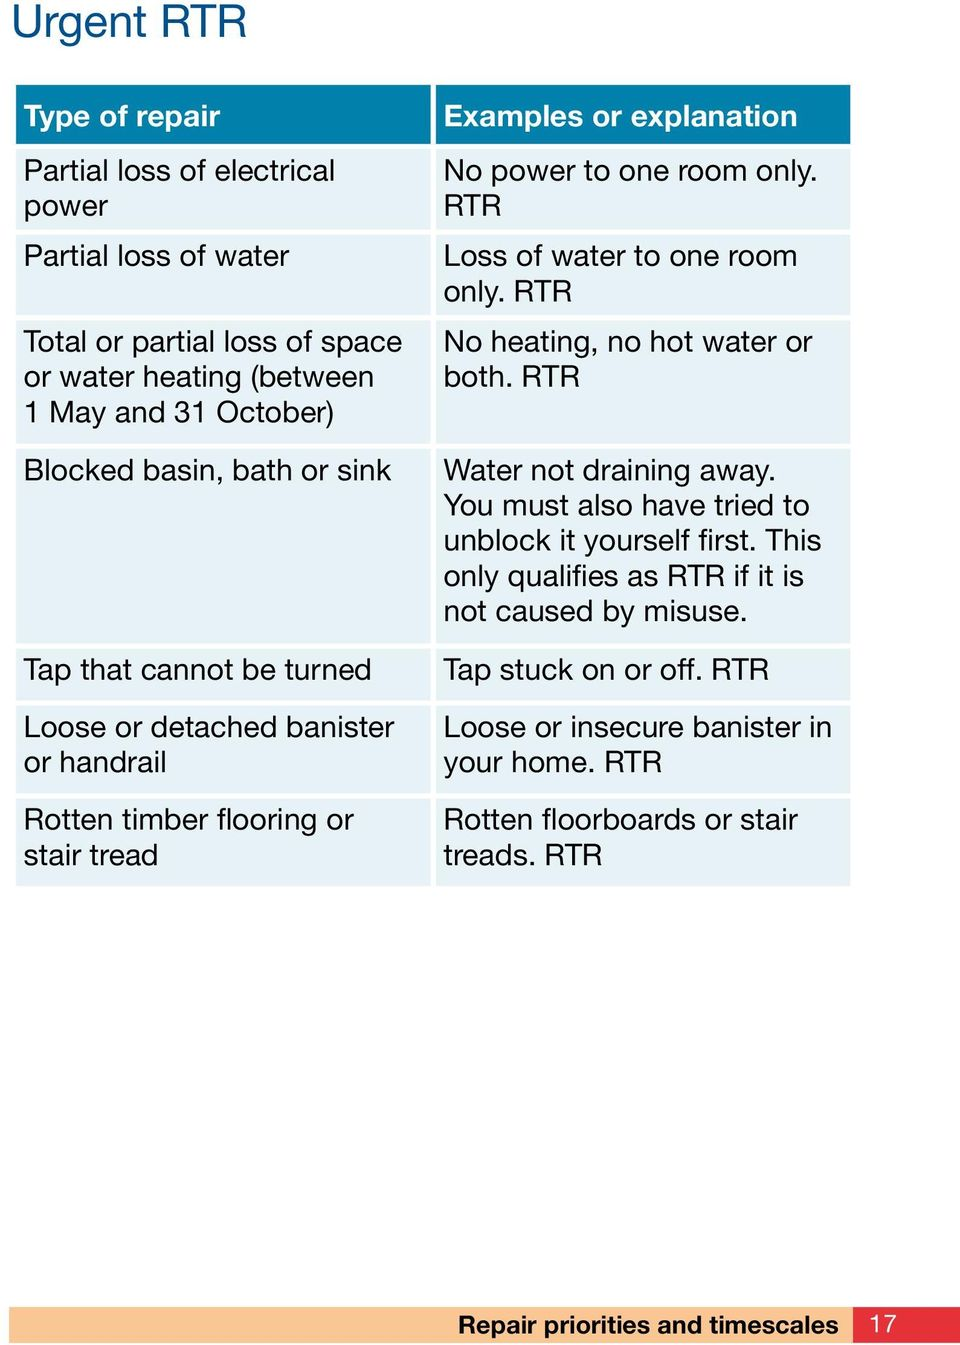 RTR Loss of water to one room only. RTR No heating, no hot water or both. RTR Water not draining away. You must also have tried to unblock it yourself first.